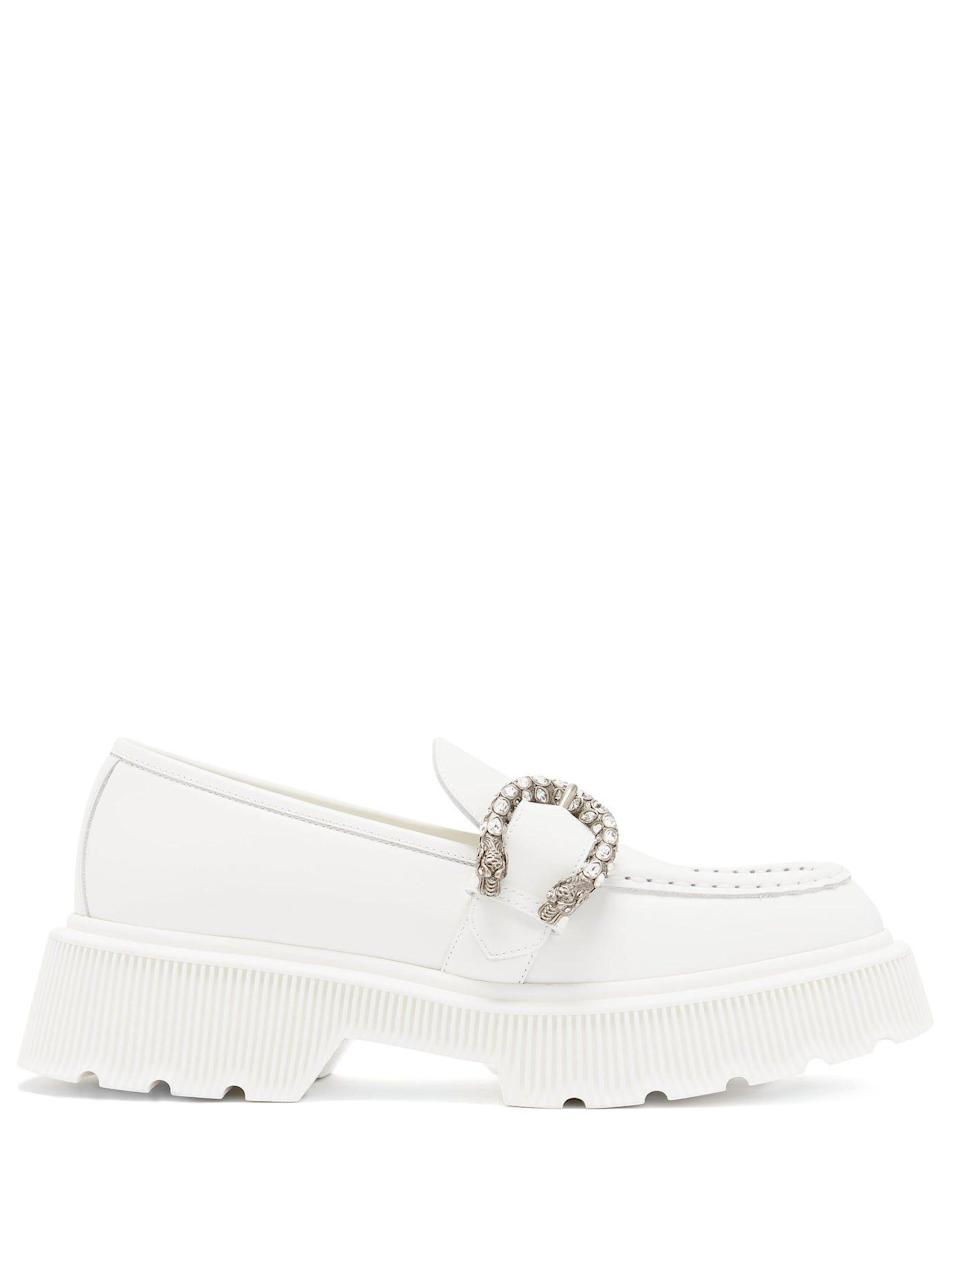 """<p><strong>Gucci</strong></p><p>matchesfashion.com</p><p><strong>$980.00</strong></p><p><a href=""""https://go.redirectingat.com?id=74968X1596630&url=https%3A%2F%2Fwww.matchesfashion.com%2Fus%2Fproducts%2F1361010&sref=https%3A%2F%2Fwww.harpersbazaar.com%2Fwedding%2Fbridal-fashion%2Fg36113322%2Fwedding-flats-for-brides%2F"""" rel=""""nofollow noopener"""" target=""""_blank"""" data-ylk=""""slk:SHOP NOW"""" class=""""link rapid-noclick-resp"""">SHOP NOW</a></p><p>Catch a more modern vibe—that still feels bridal—with a pair of buckle leather loafers. Appropriately, these were inspired by the ancient Greek god of festivity and theatre.</p>"""